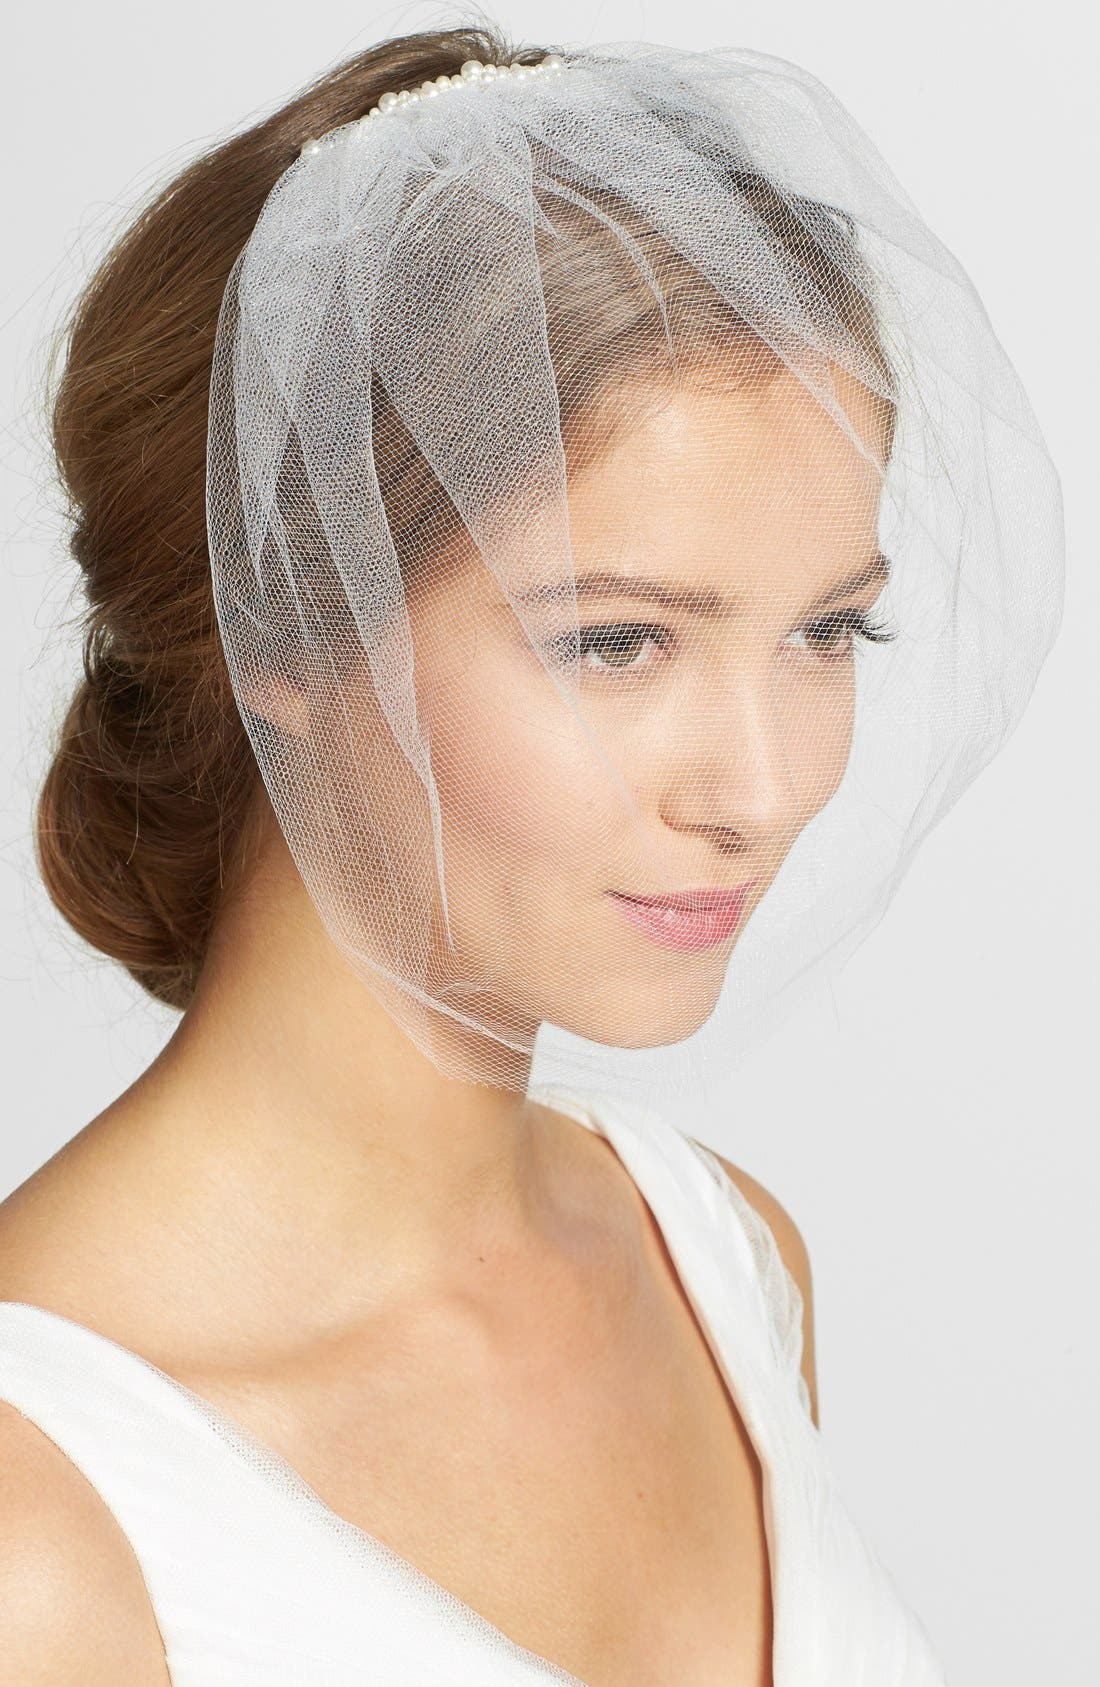 Alternate Image 1 Selected - J-Picone Imitation Pearl Comb Tulle Blusher/Birdcage Veil